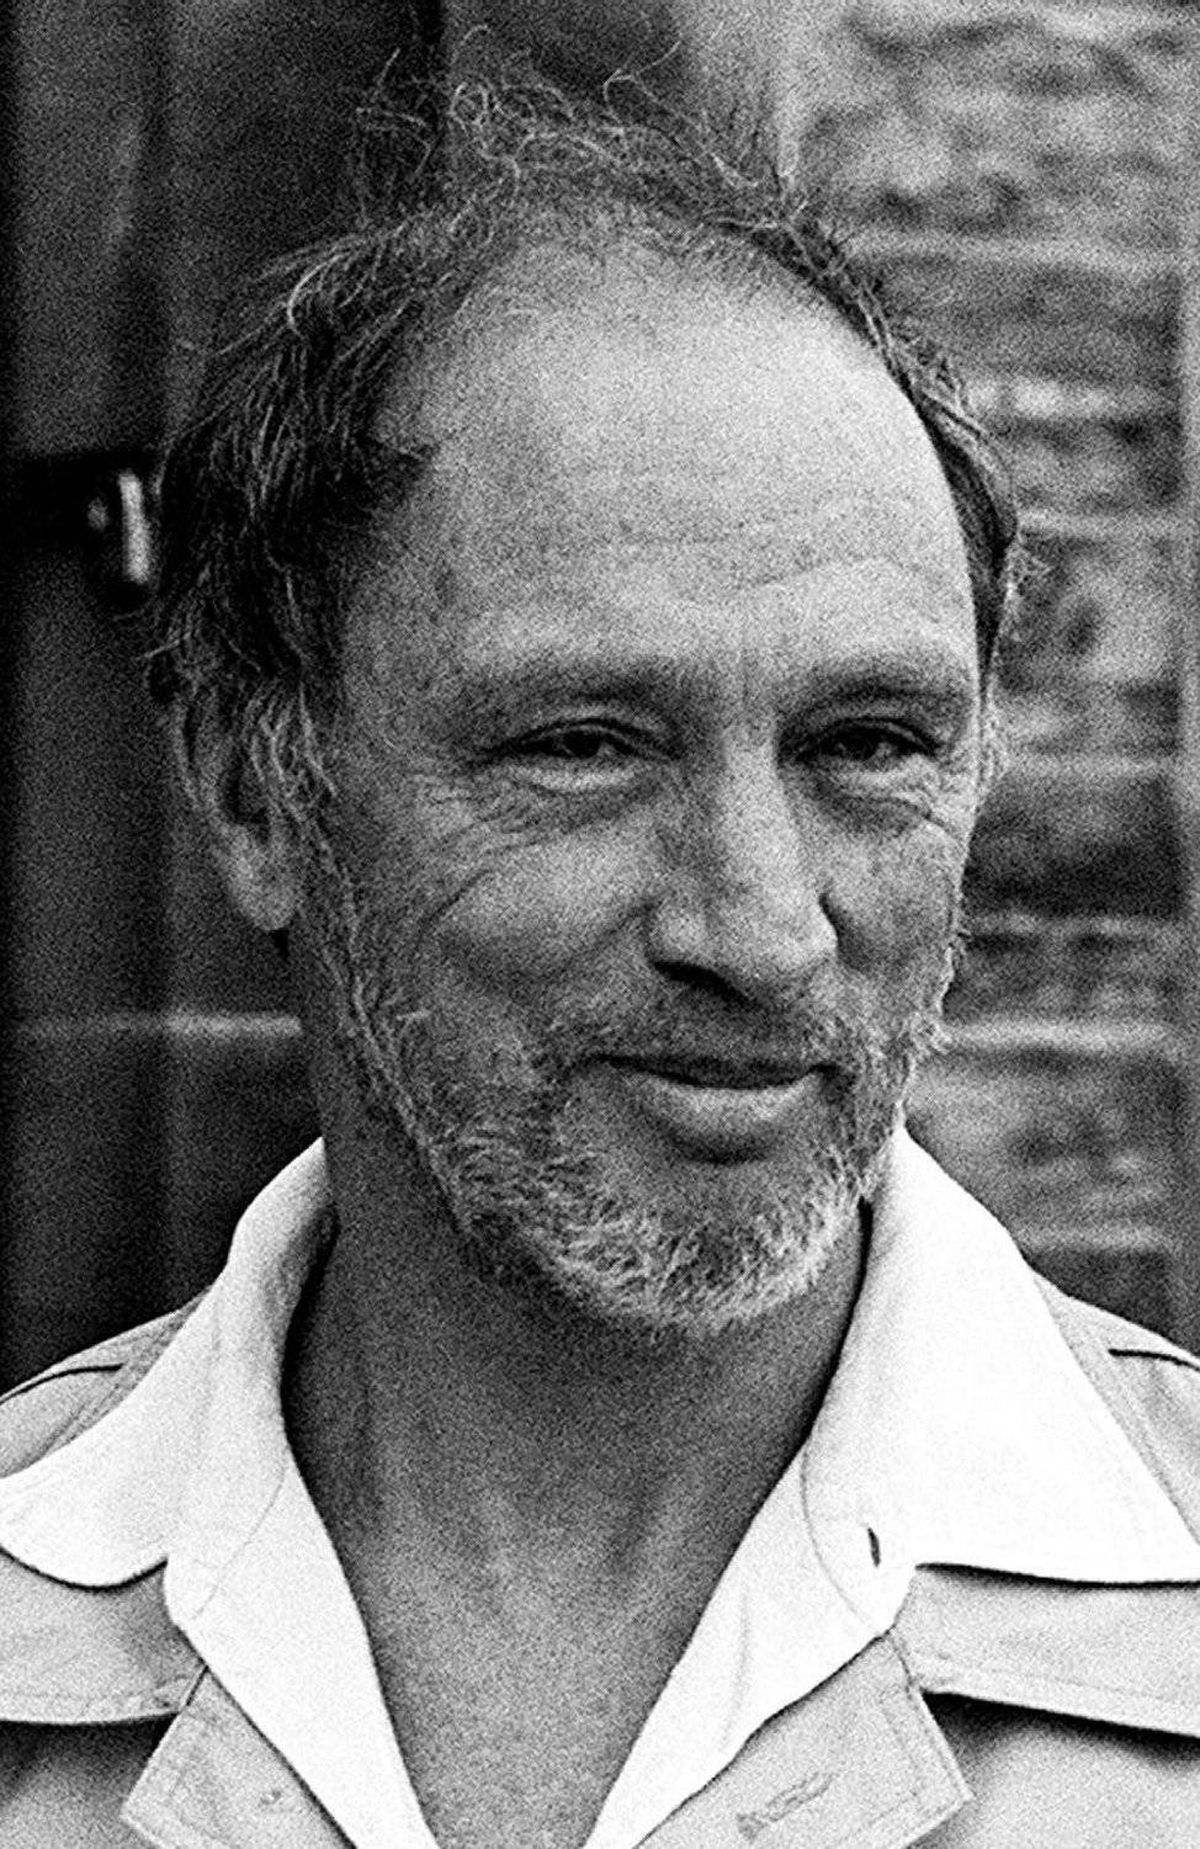 Pierre Trudeau sports a beard after returning from a wilderness canoe trip in the Northwest Territories, in Ottawa, Aug 15, 1979.